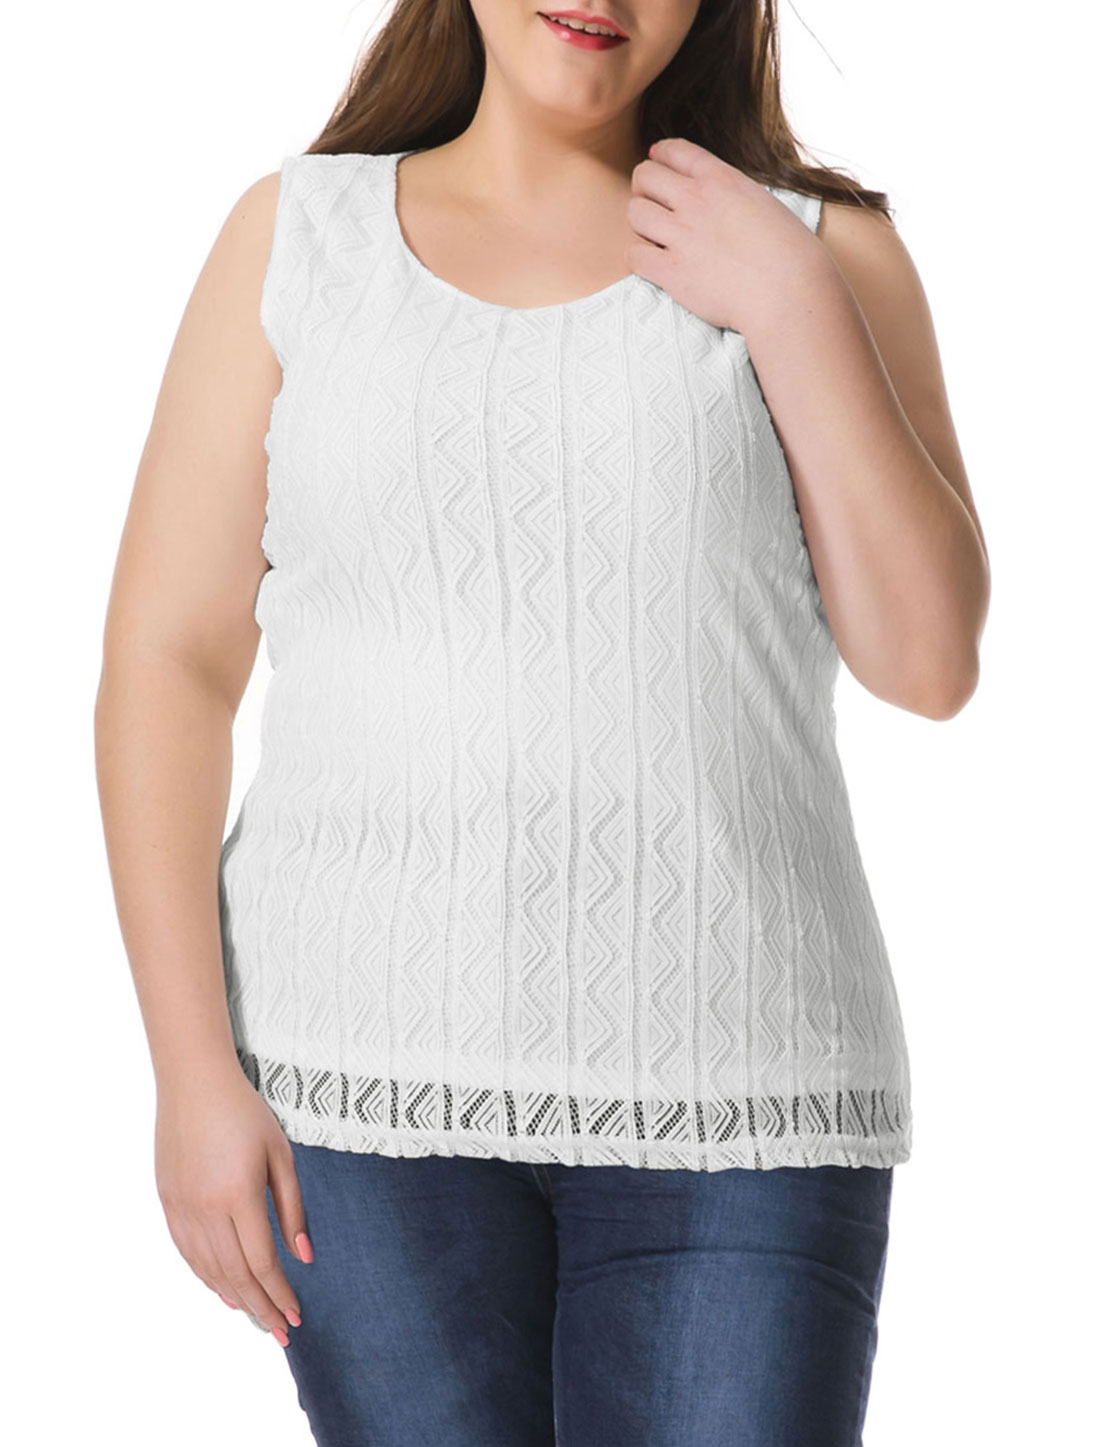 Women Plus Size Hollow Triangle Sleeveless Top White 3X